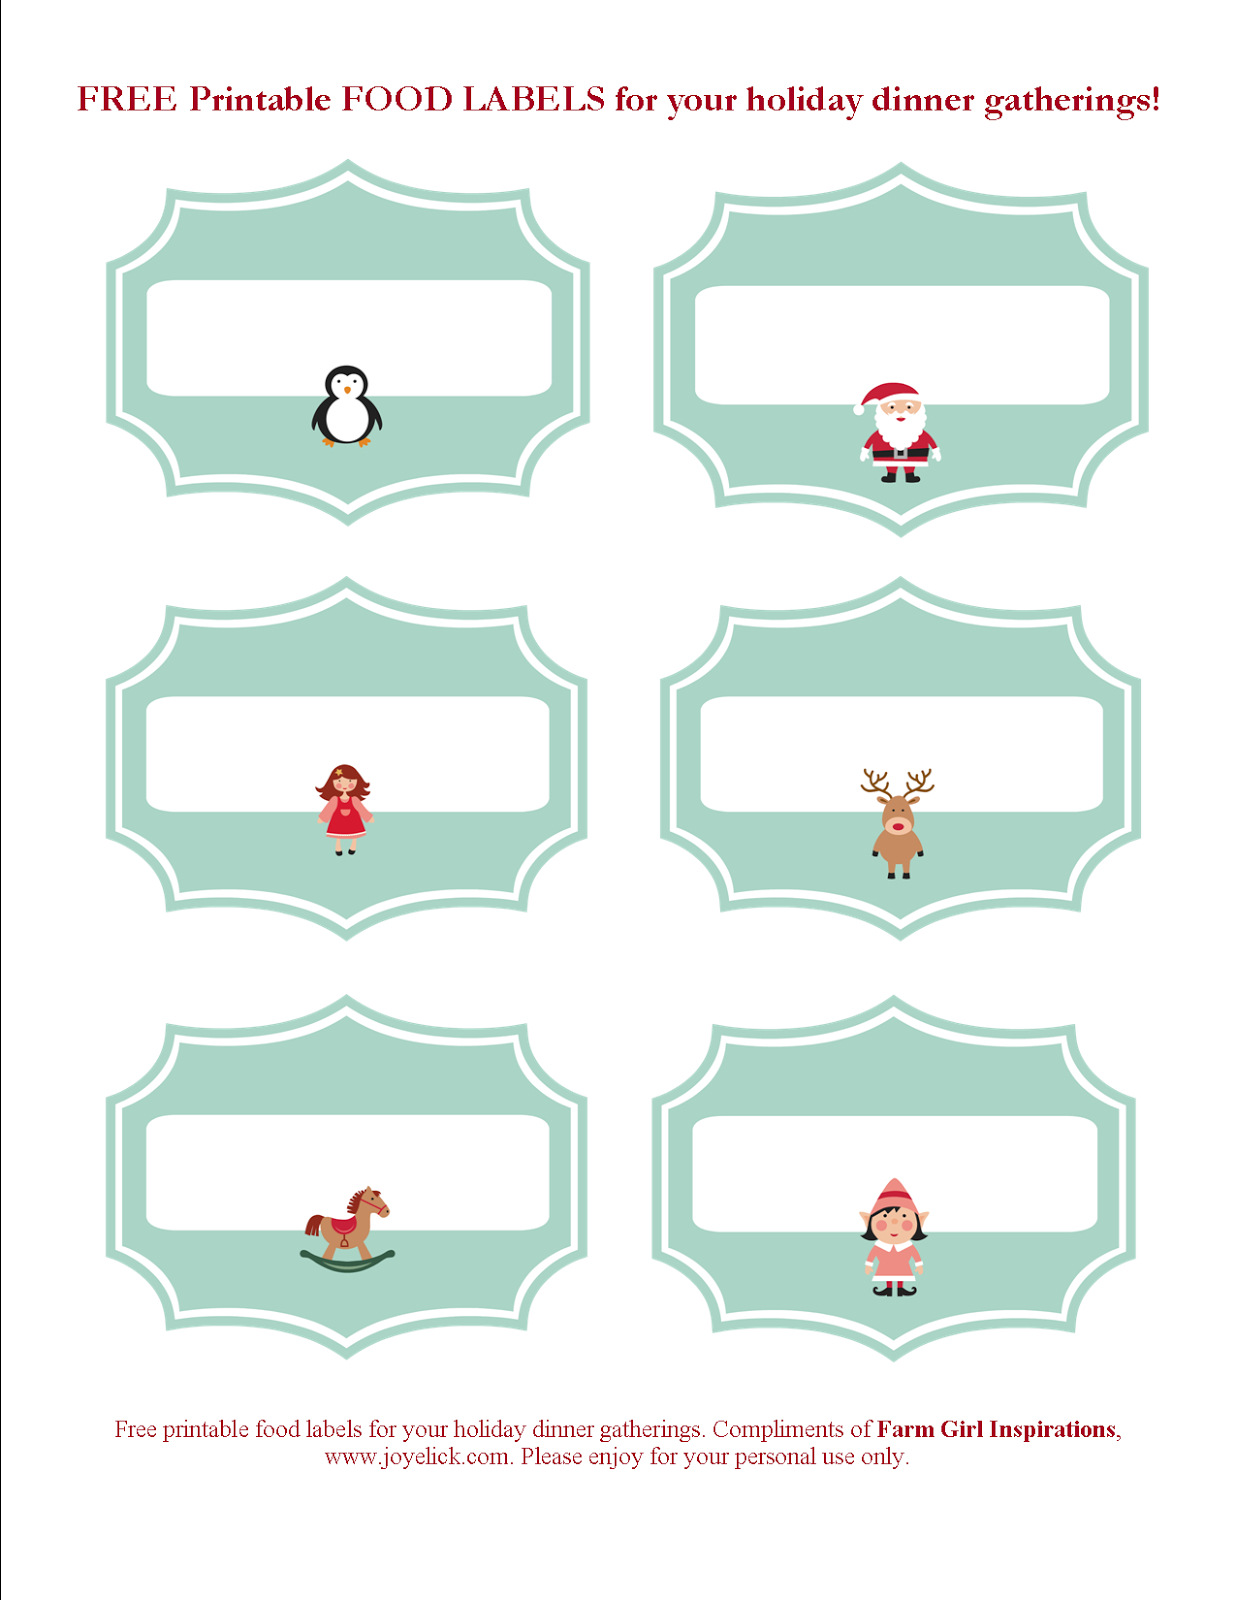 Free Printable Christmas Planner Set: Stay Organized This Holiday - Free Printable Christmas Food Labels